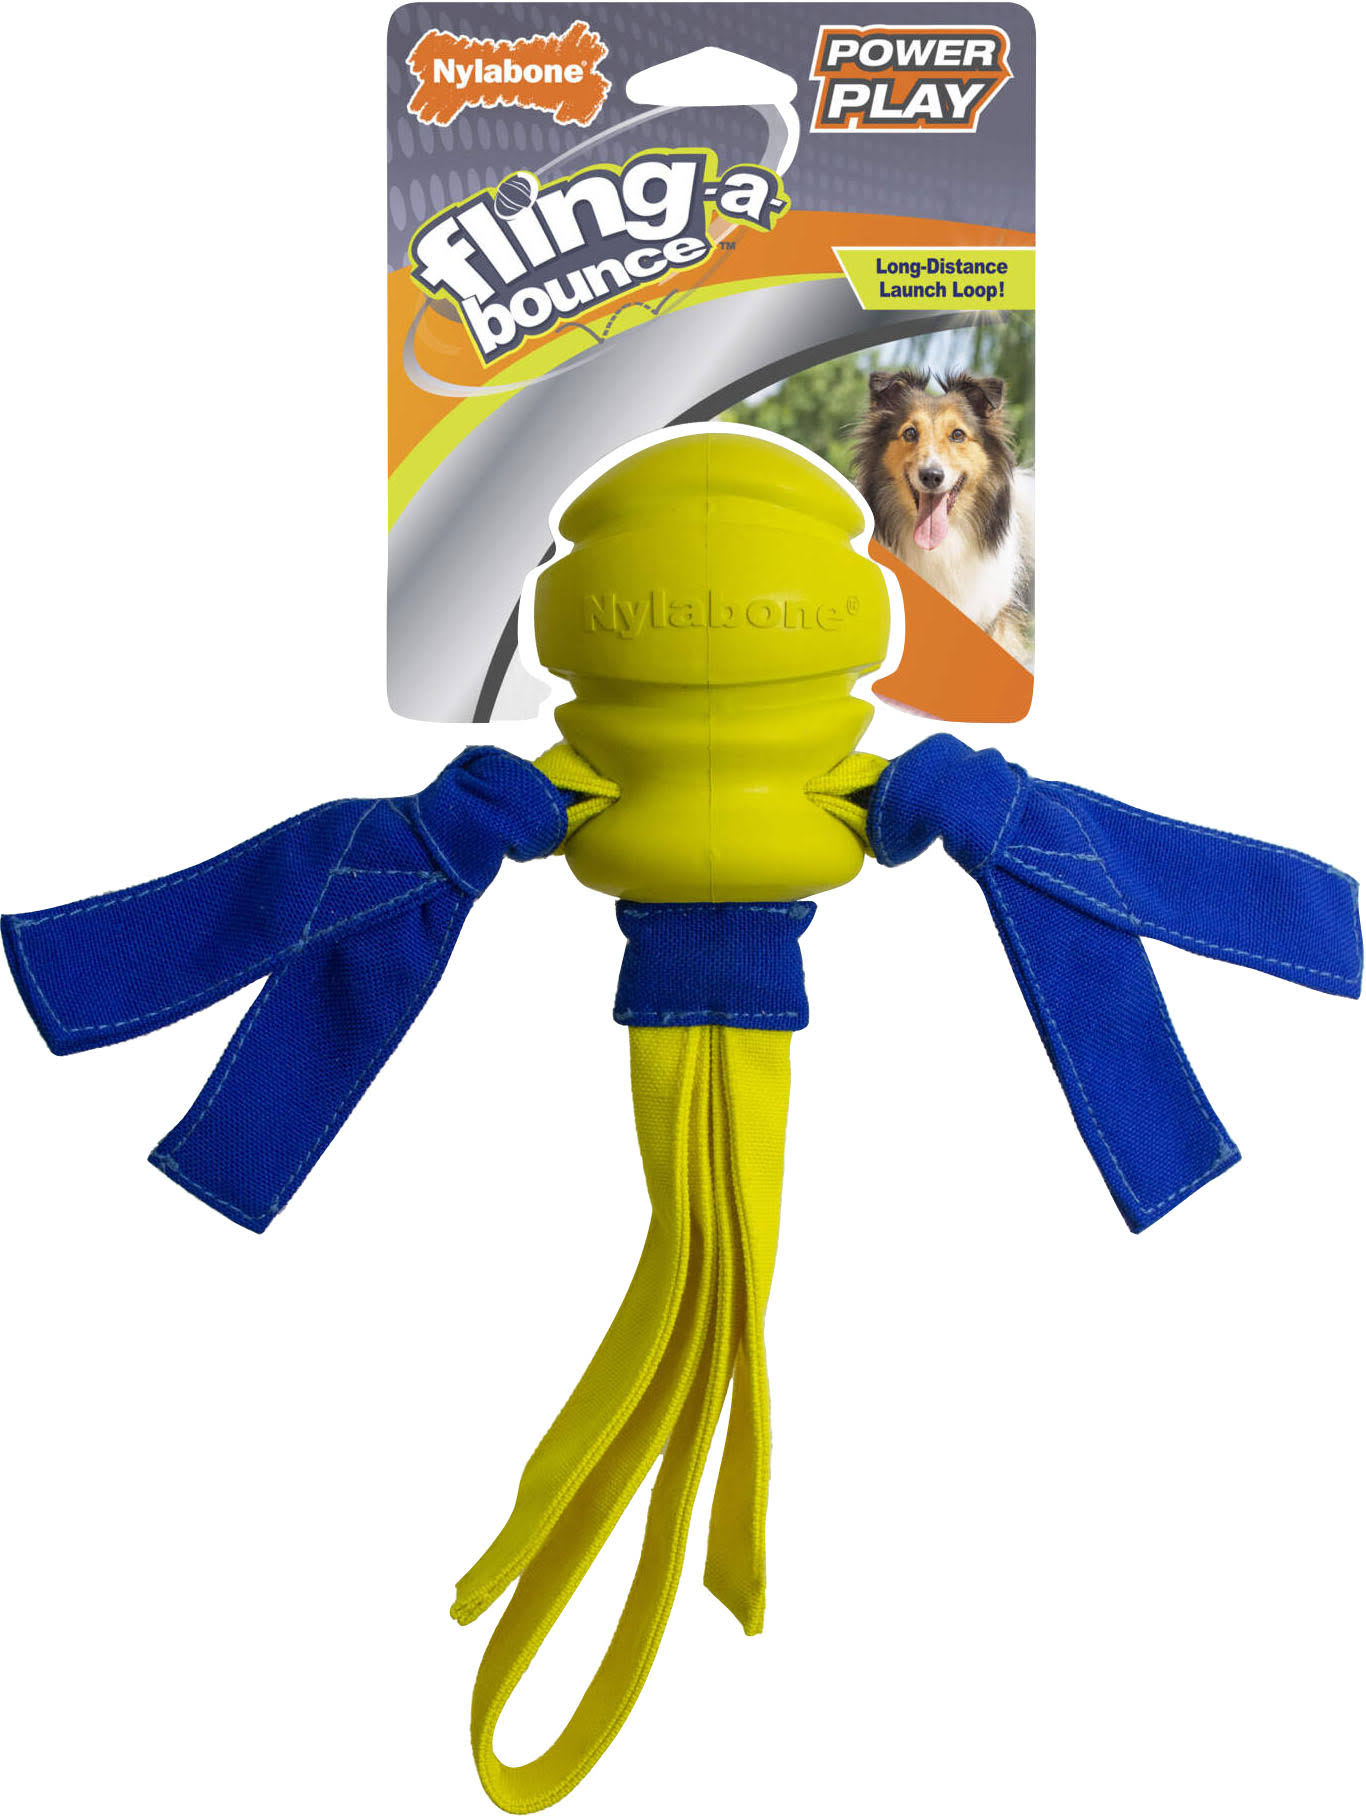 Nylabone Power Play Fling-A-Bounce Dog Toy